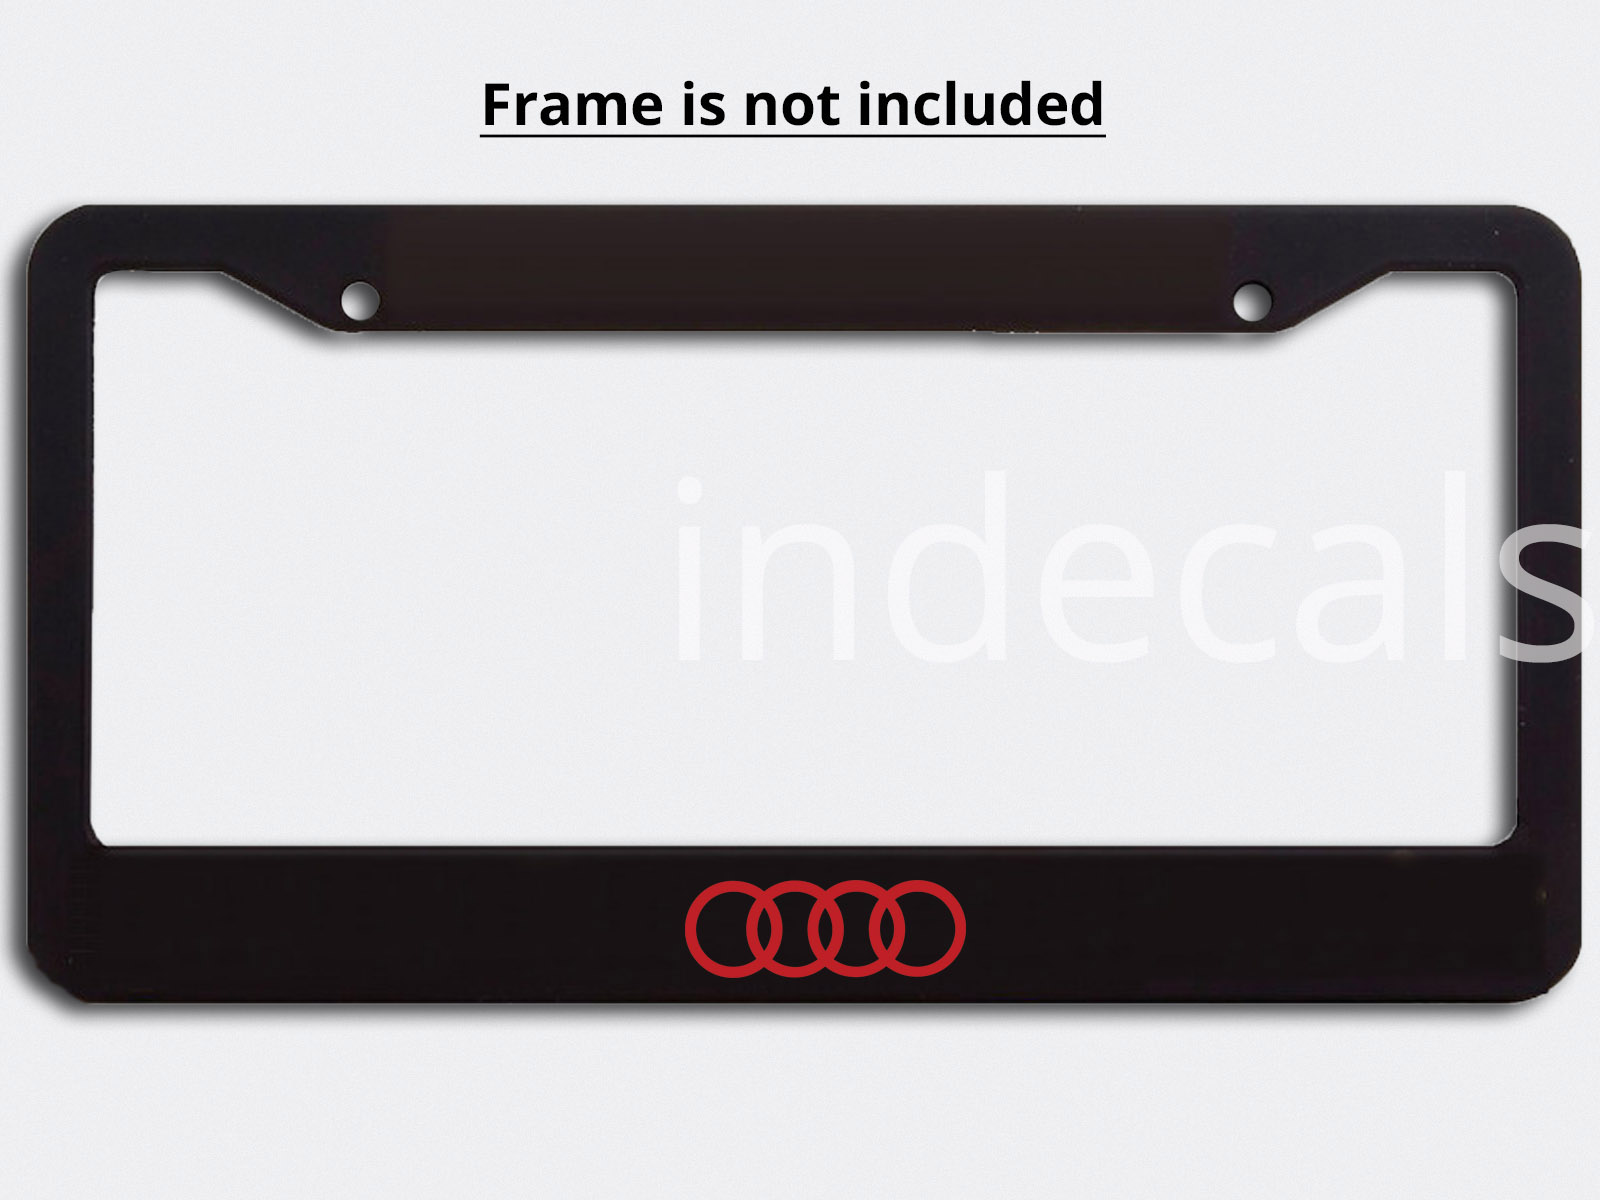 3 x Audi Rings Stickers for License Plate Frame - Red - indecals.com